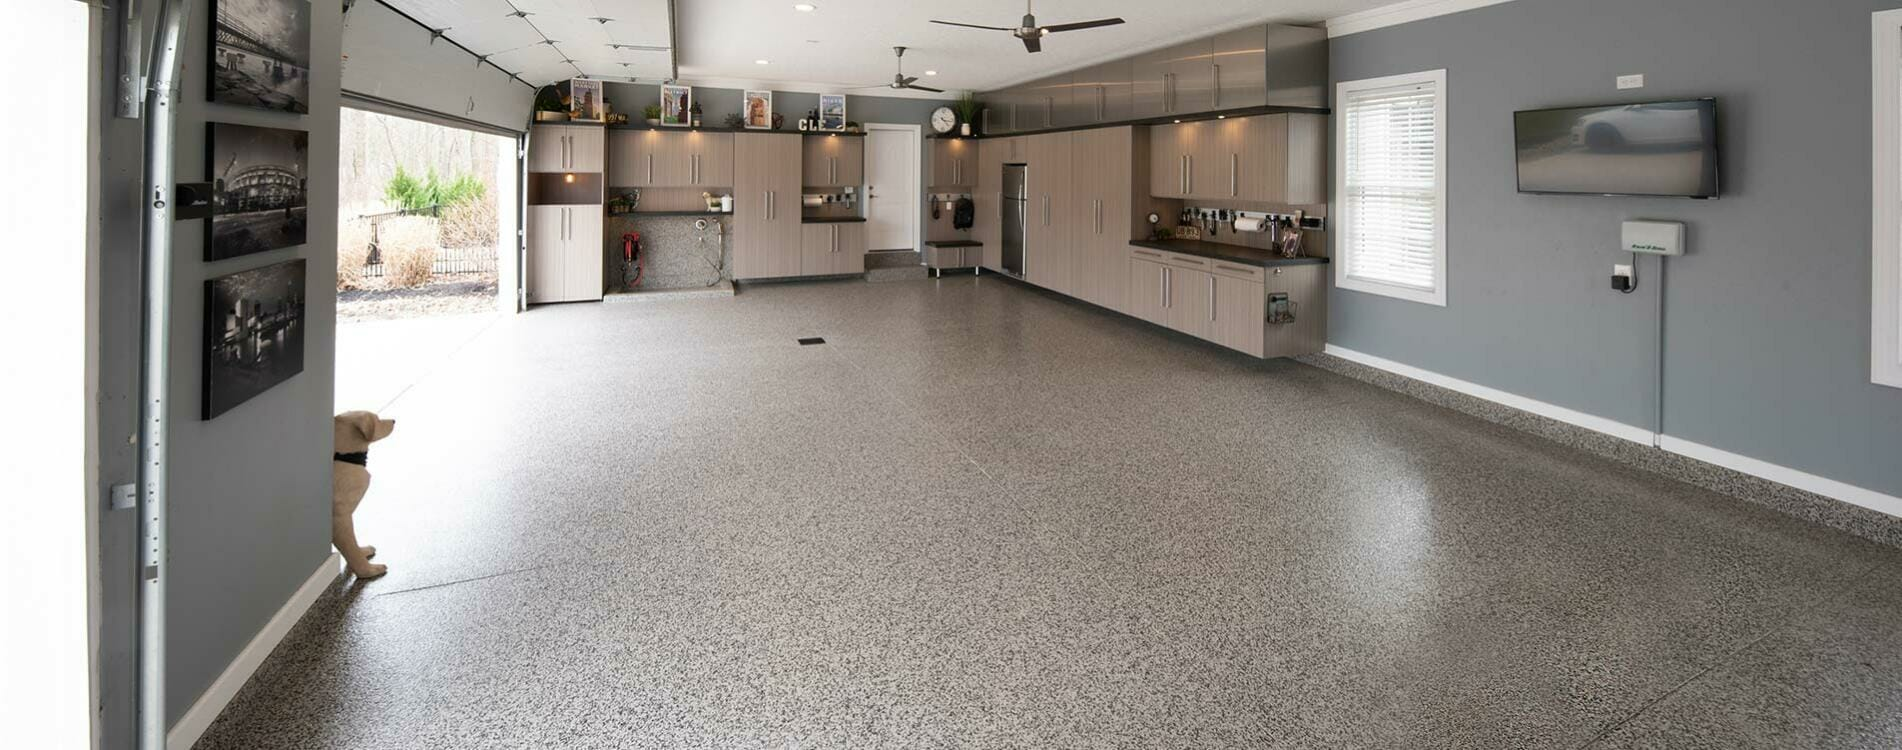 Professional Garage Flooring Installation. Party ready space!